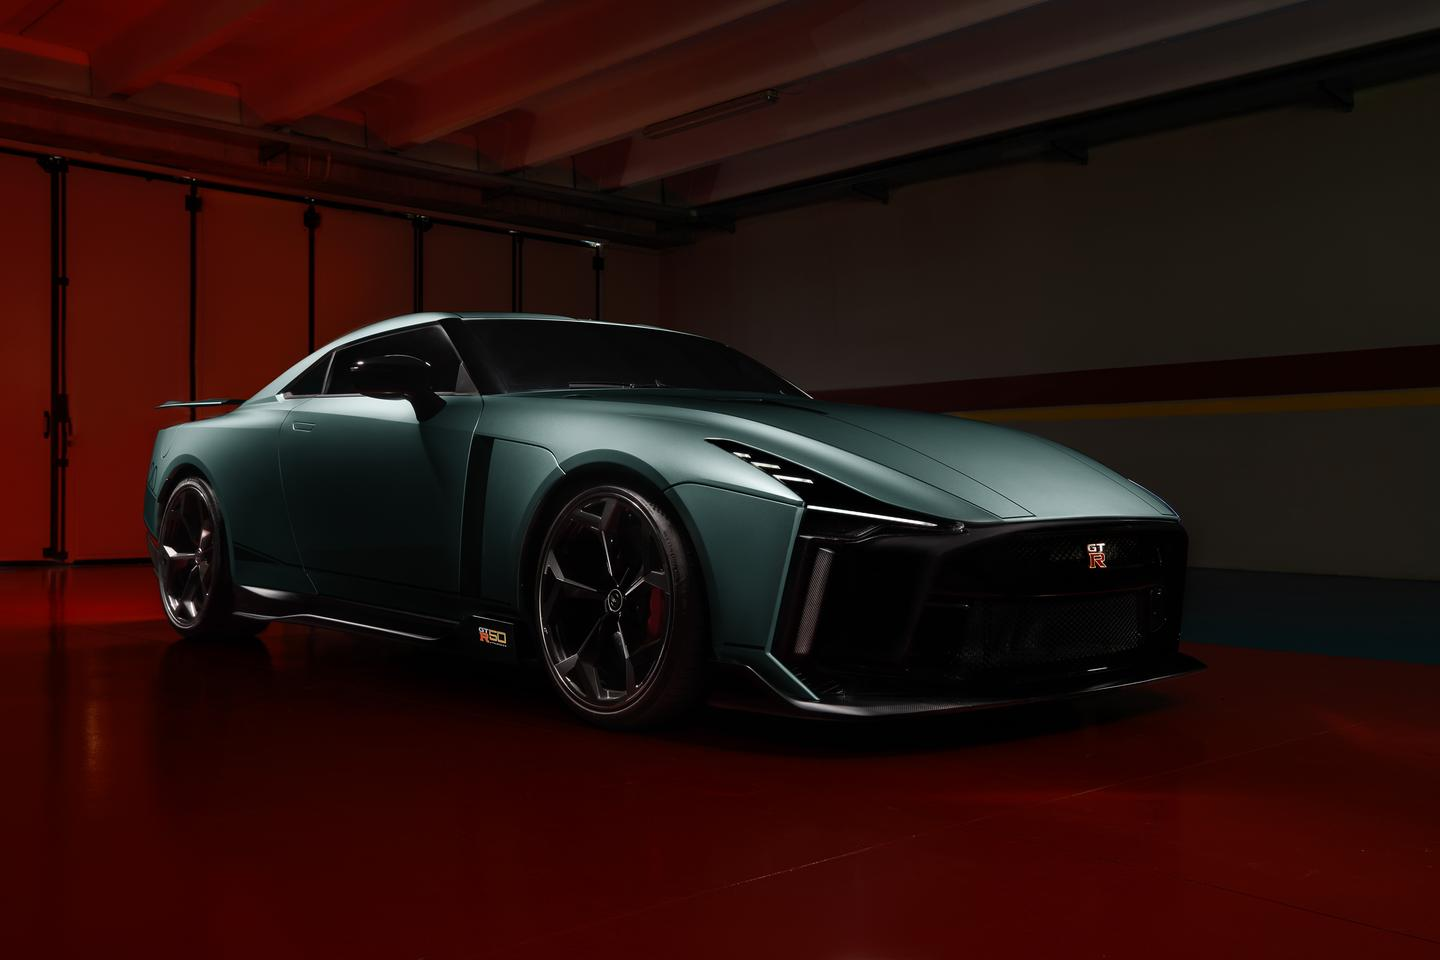 The very first production version of the Nissan GT-R 50 has arrived